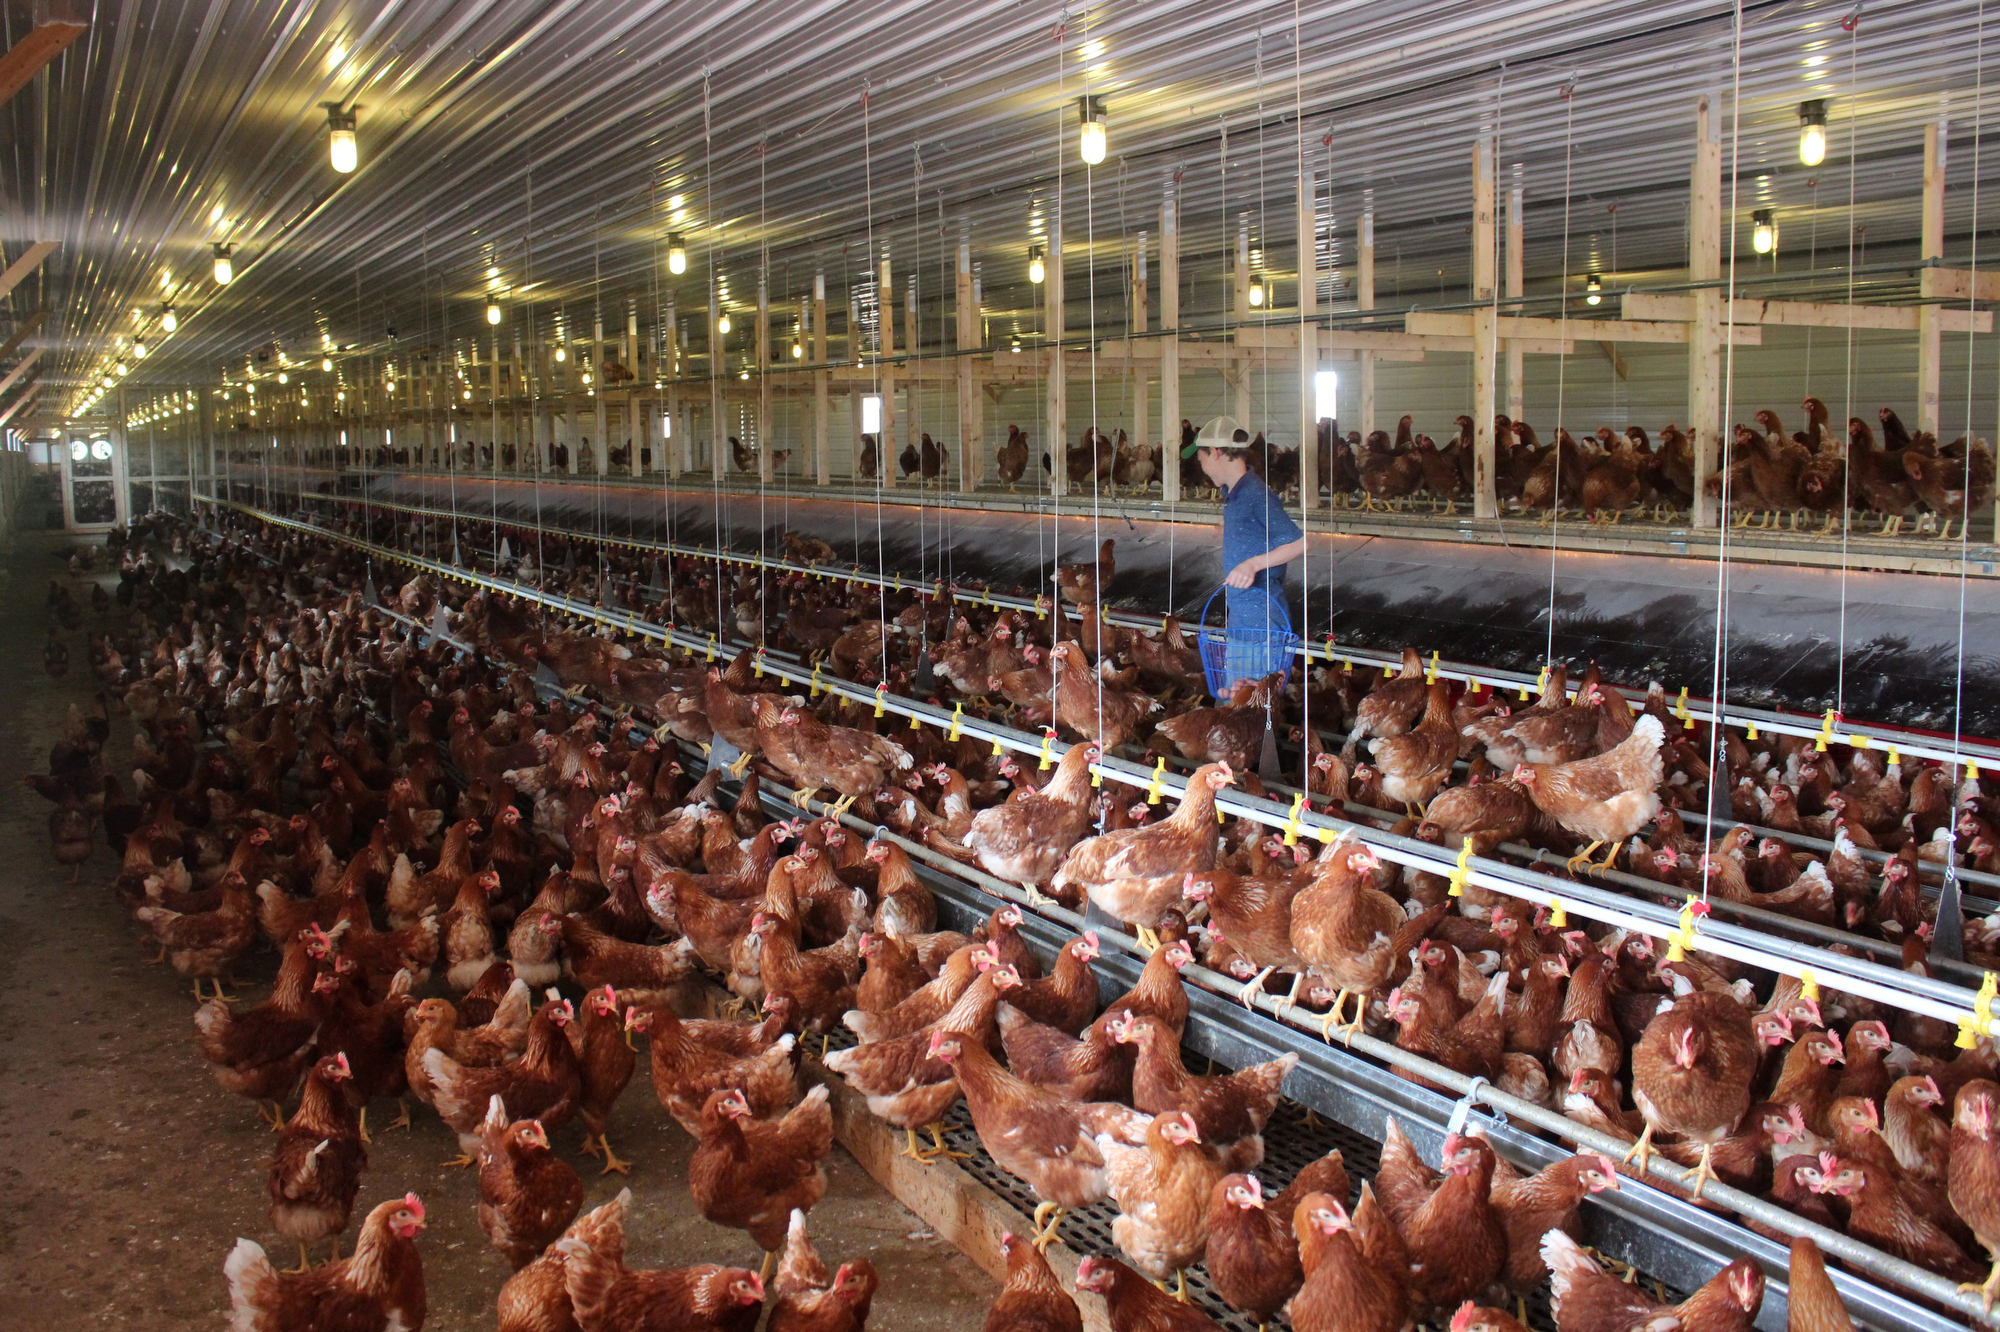 Cage-free chickens in a barn near Hershey, Pa., get to roam and perch on steel rods (but they don't go outside). In September, McDonald's said it would buy only cage-free eggs, inspiring several other food companies to follow suit.